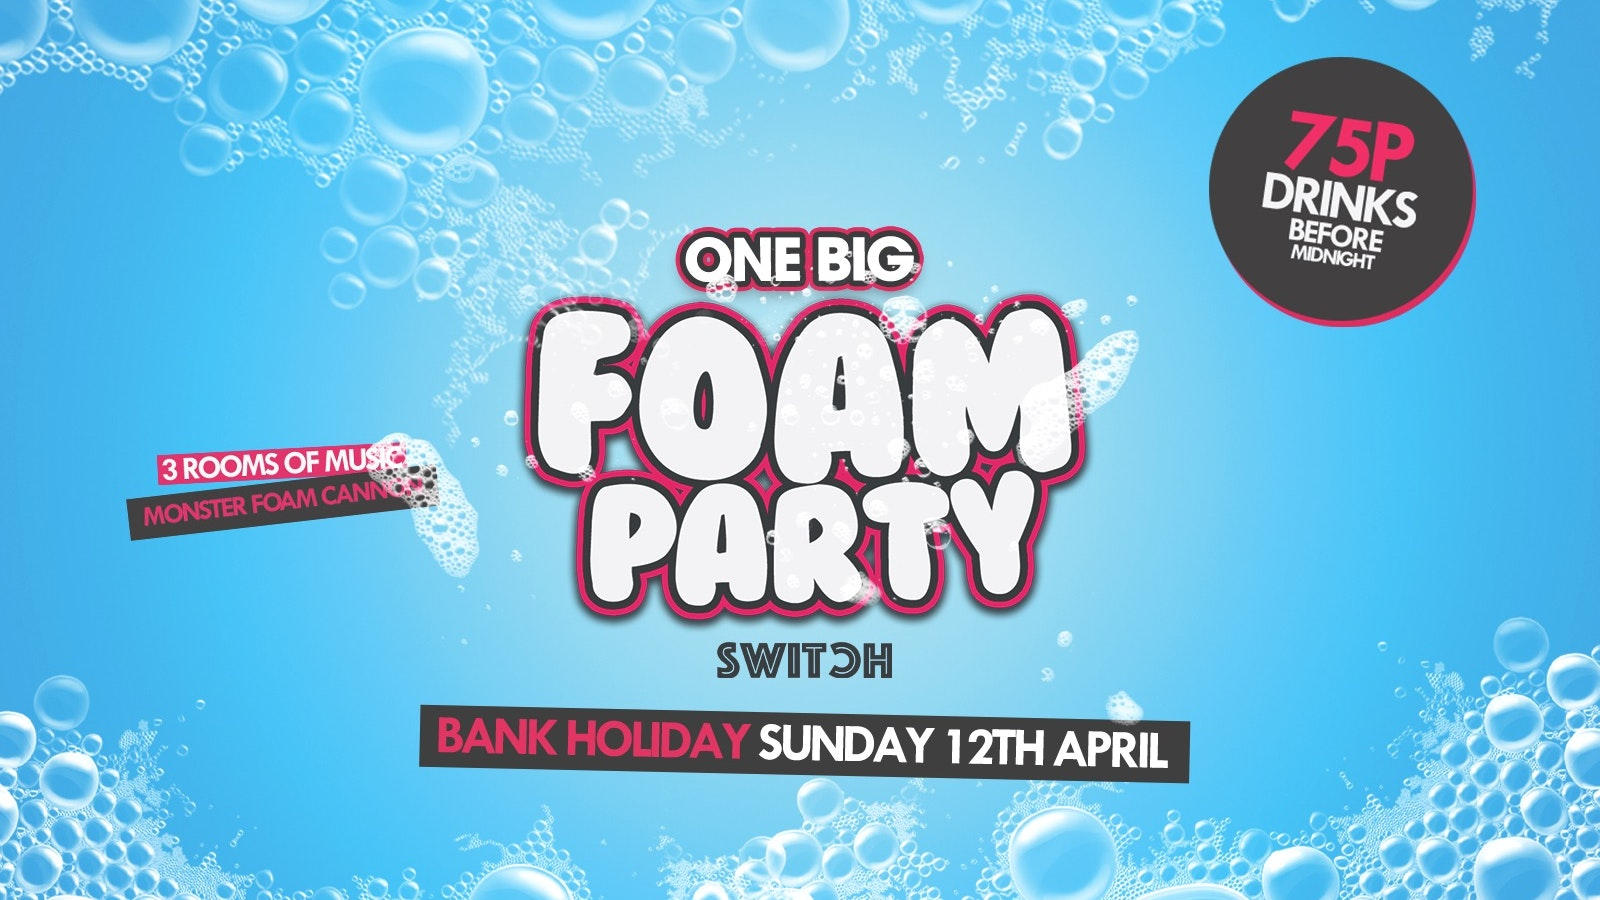 Easter Sunday One Big Foam Party